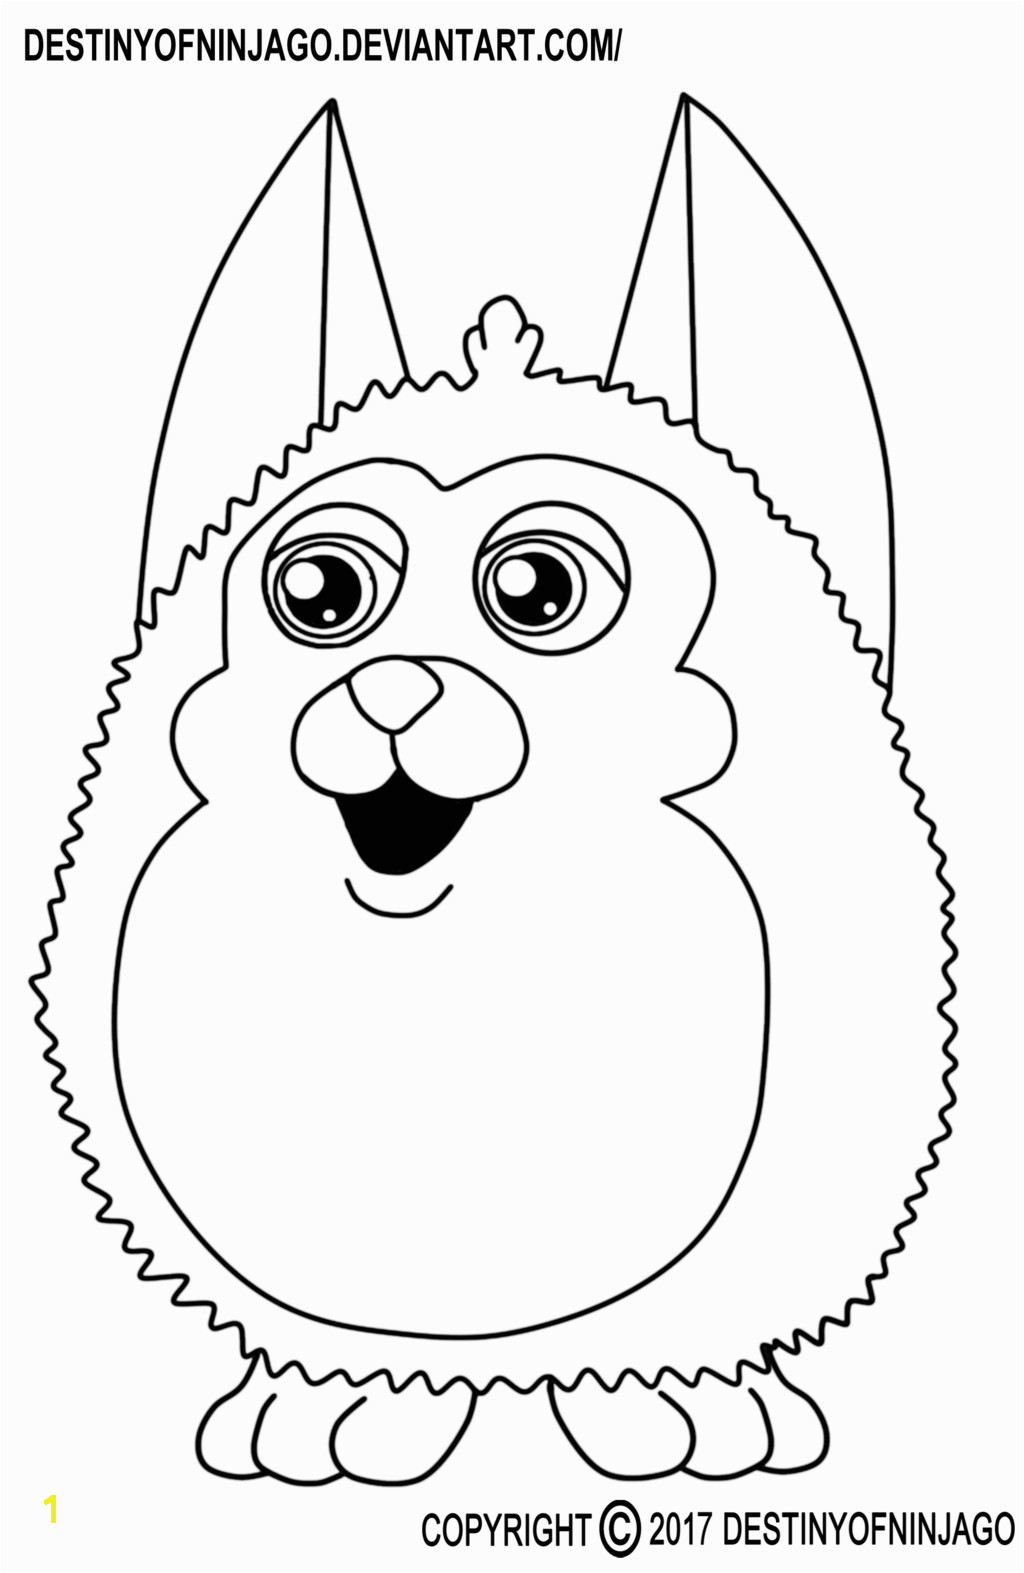 Tattling coloring pages keywords suggestions tattling png 1024x1573 Tattle tale coloring page